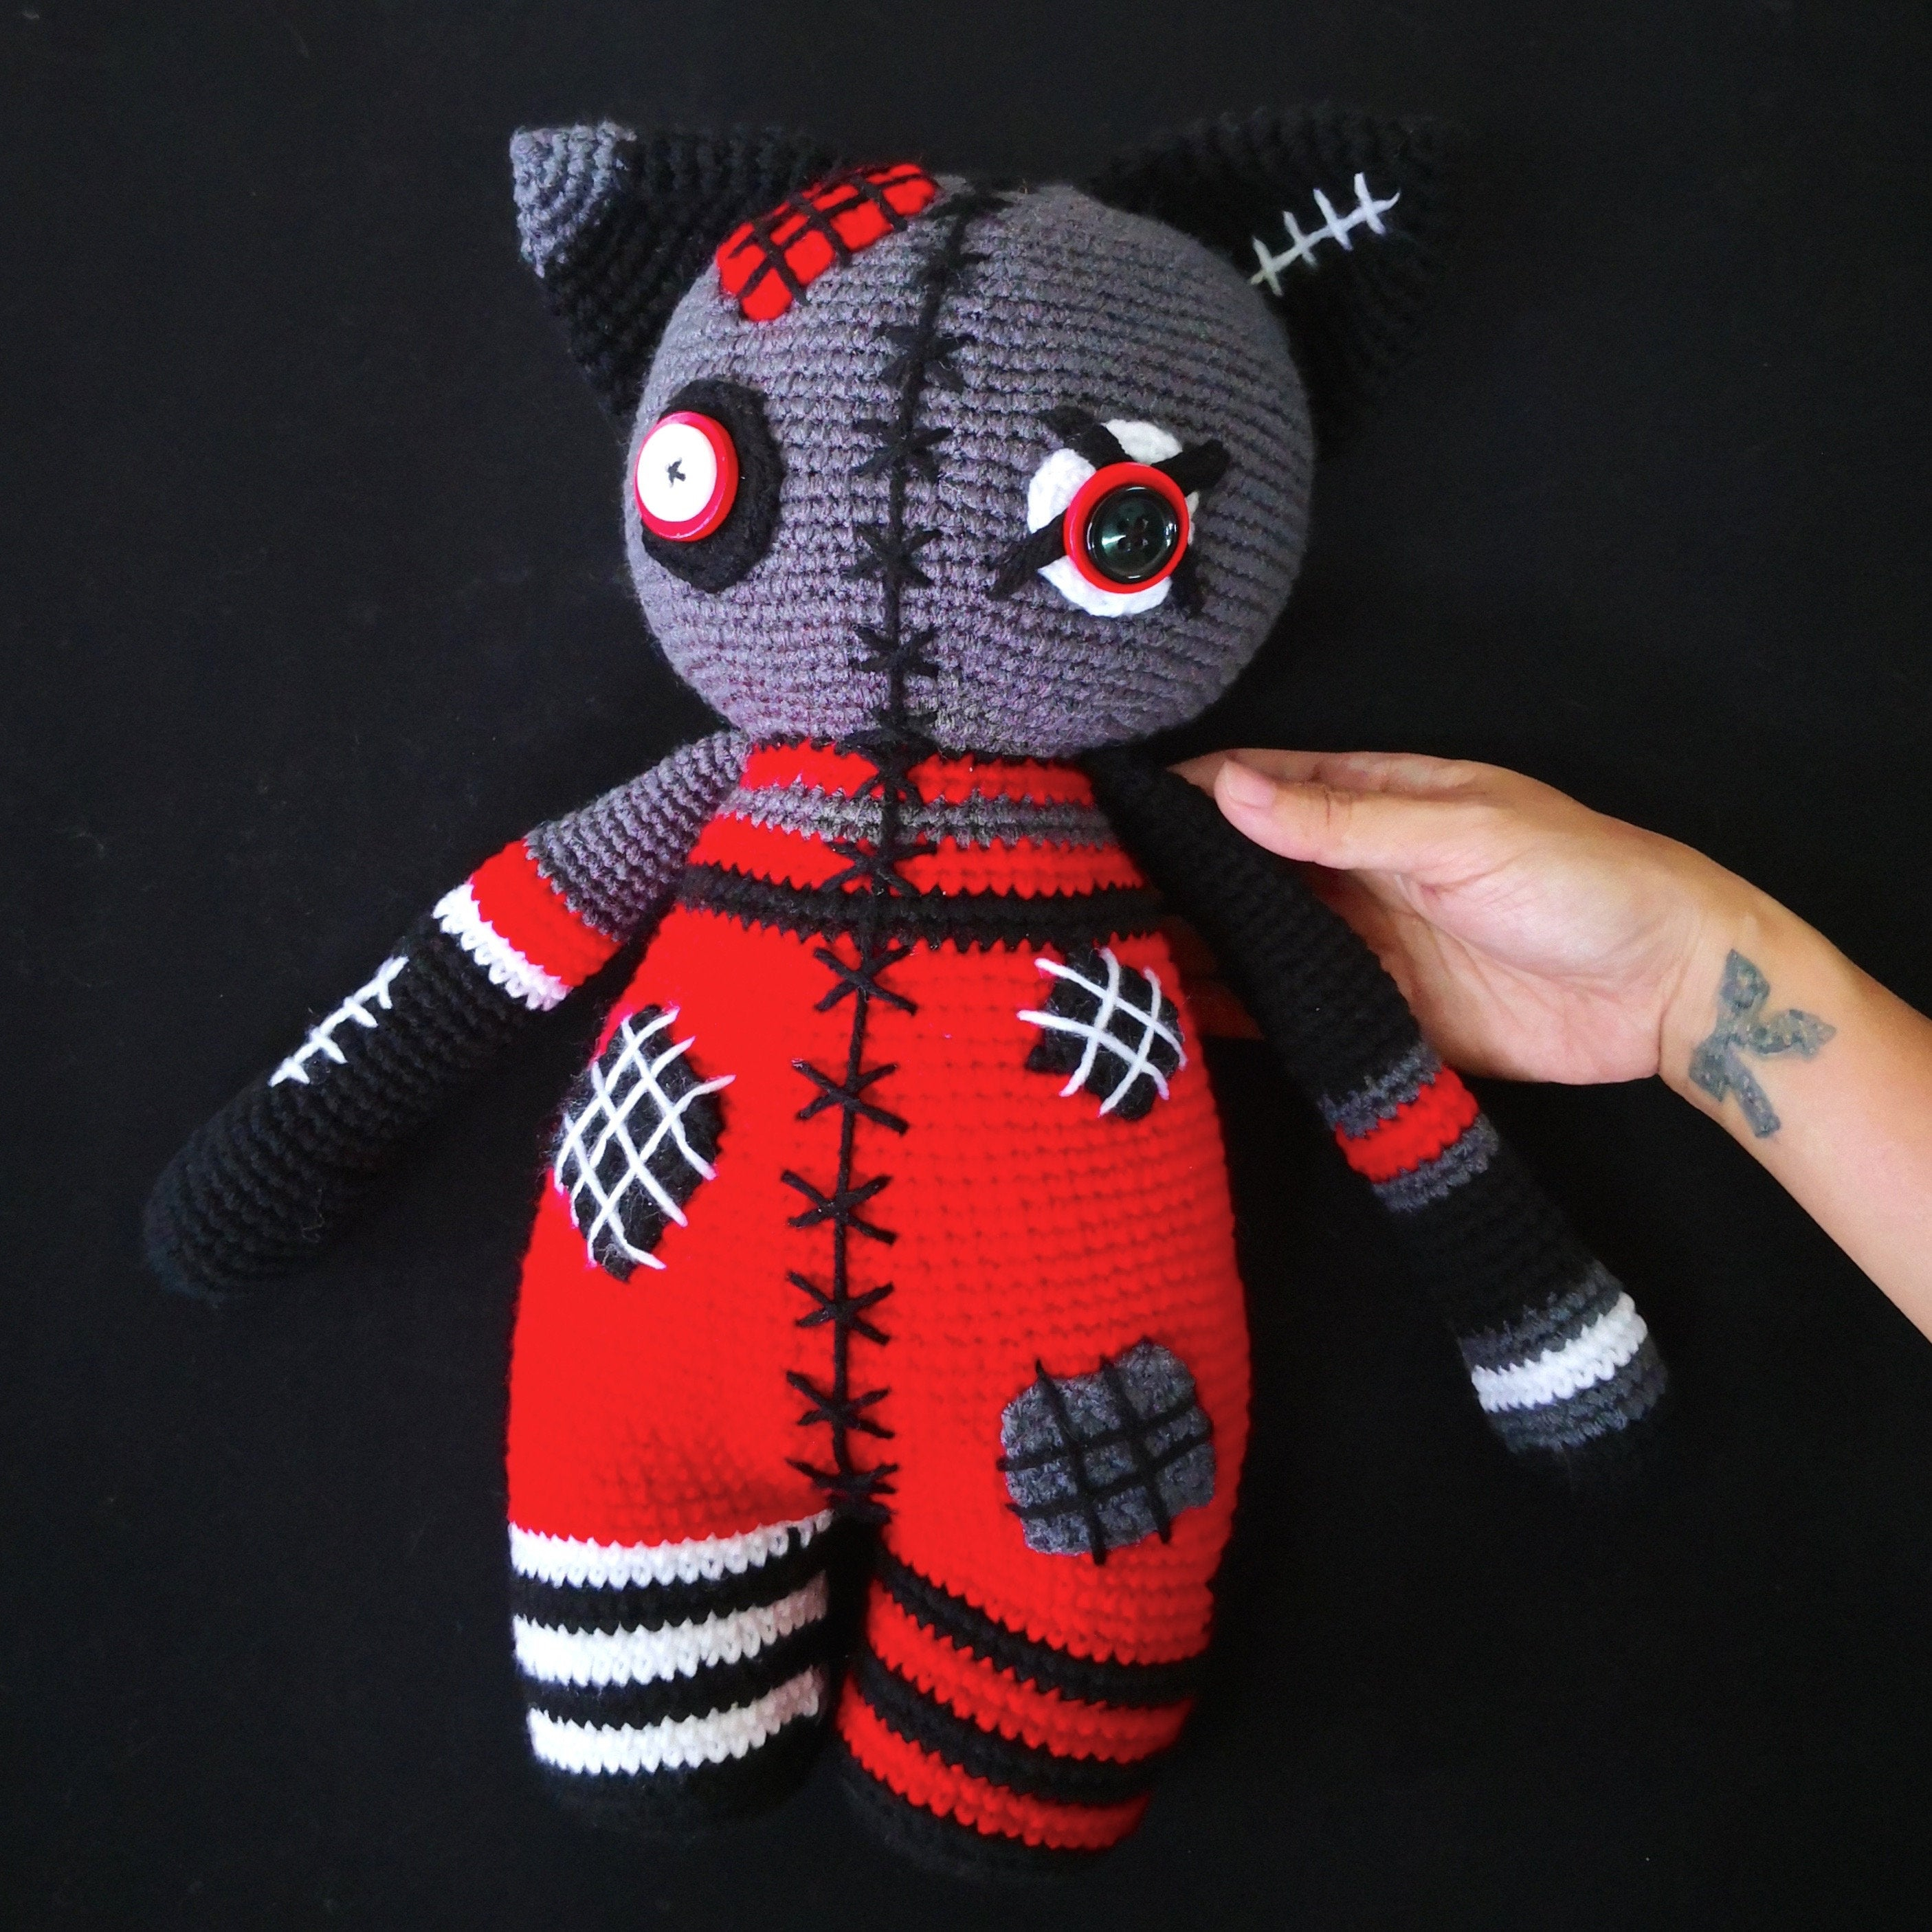 Quick Large Crochet Doll Patterns to Choose Sale 2 Patterns Large Crochet Doll Patterns Voodoo Doll Etsy